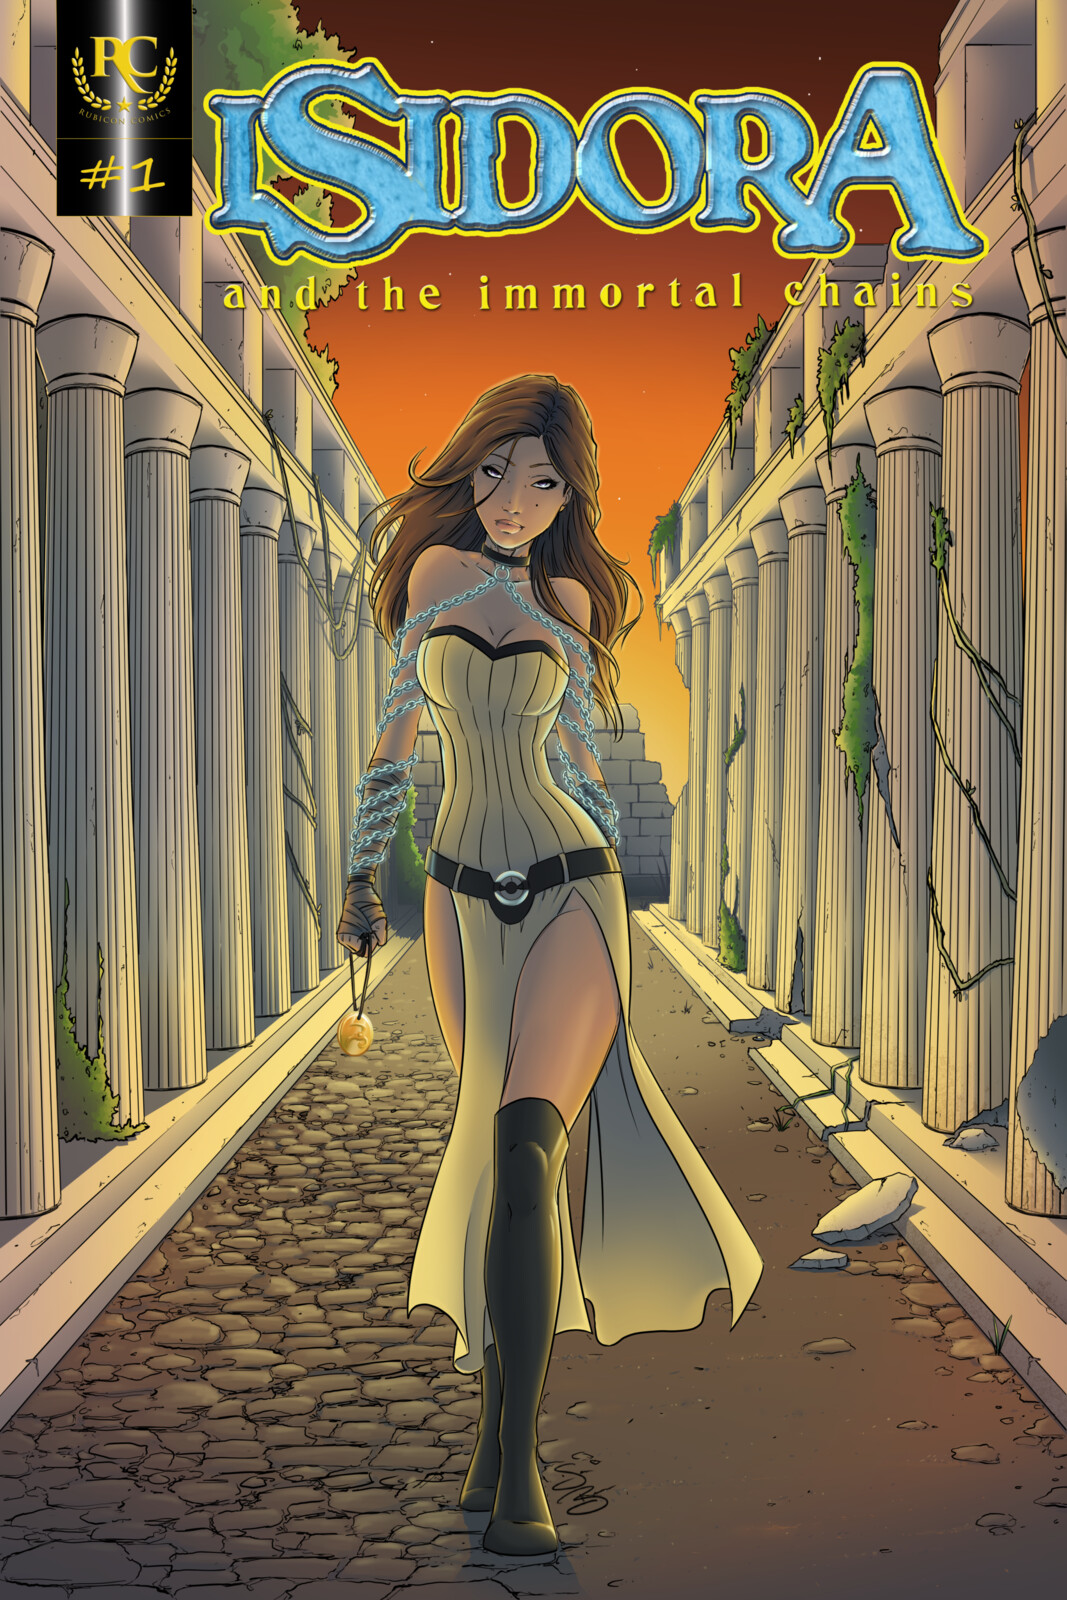 Cover page with title for Isidora and the Immortal Chains